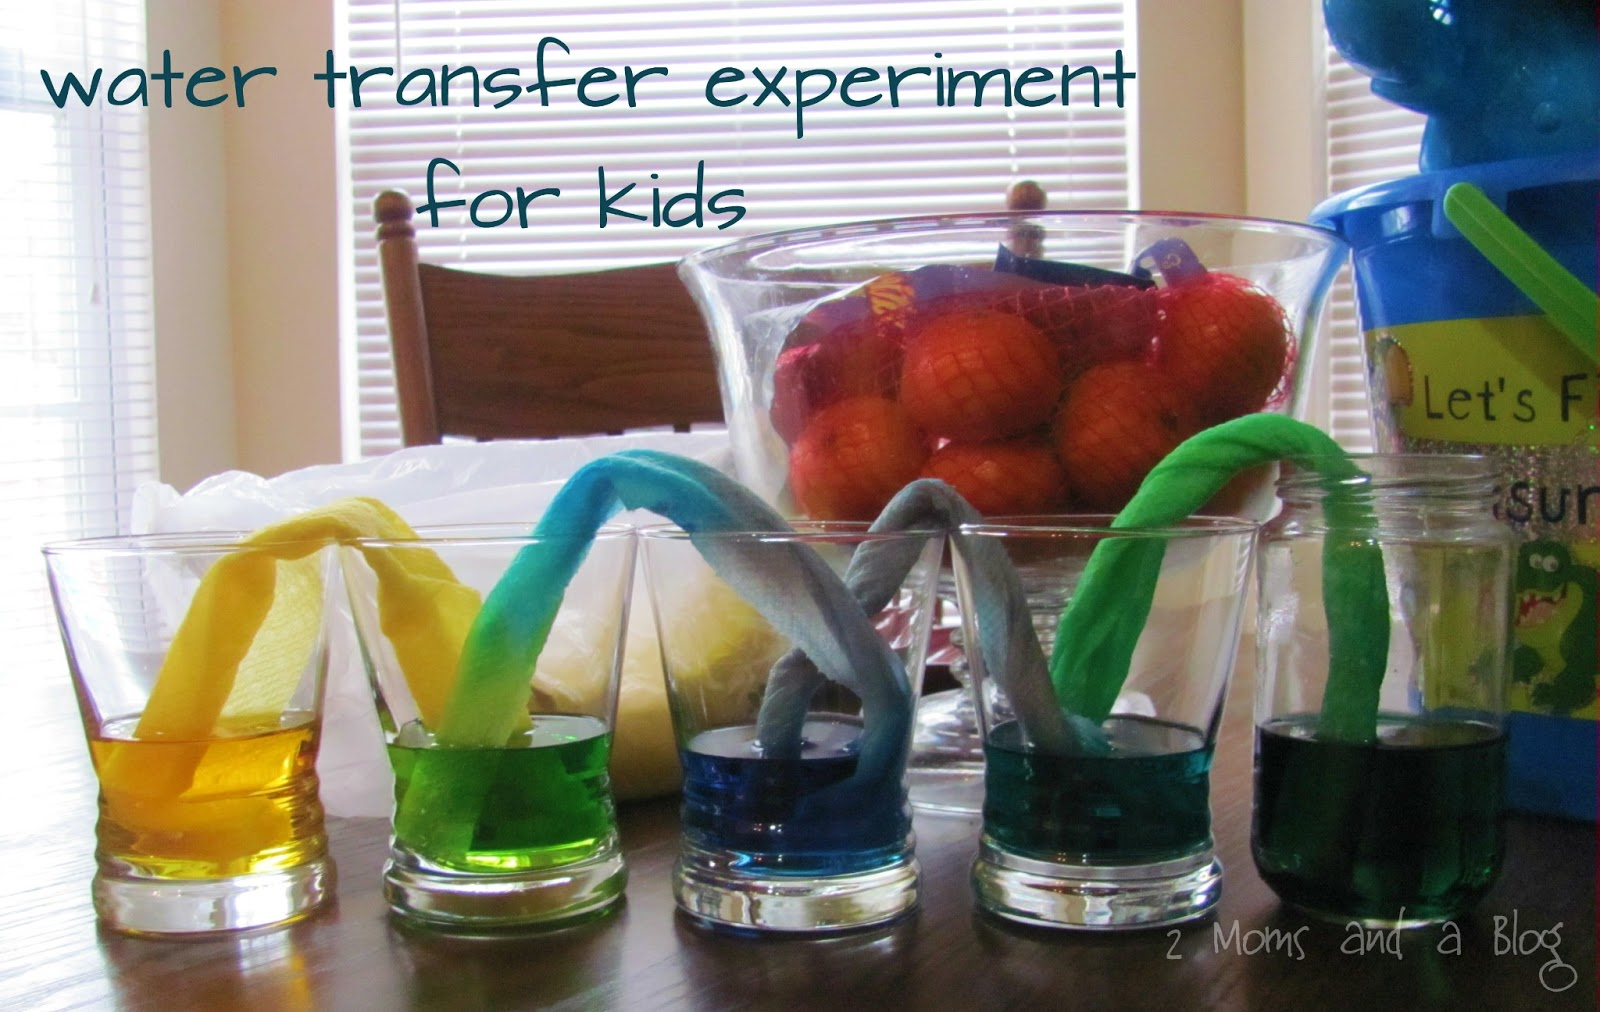 2 Moms and a Blog: Paper towel water transfer science experiment ...